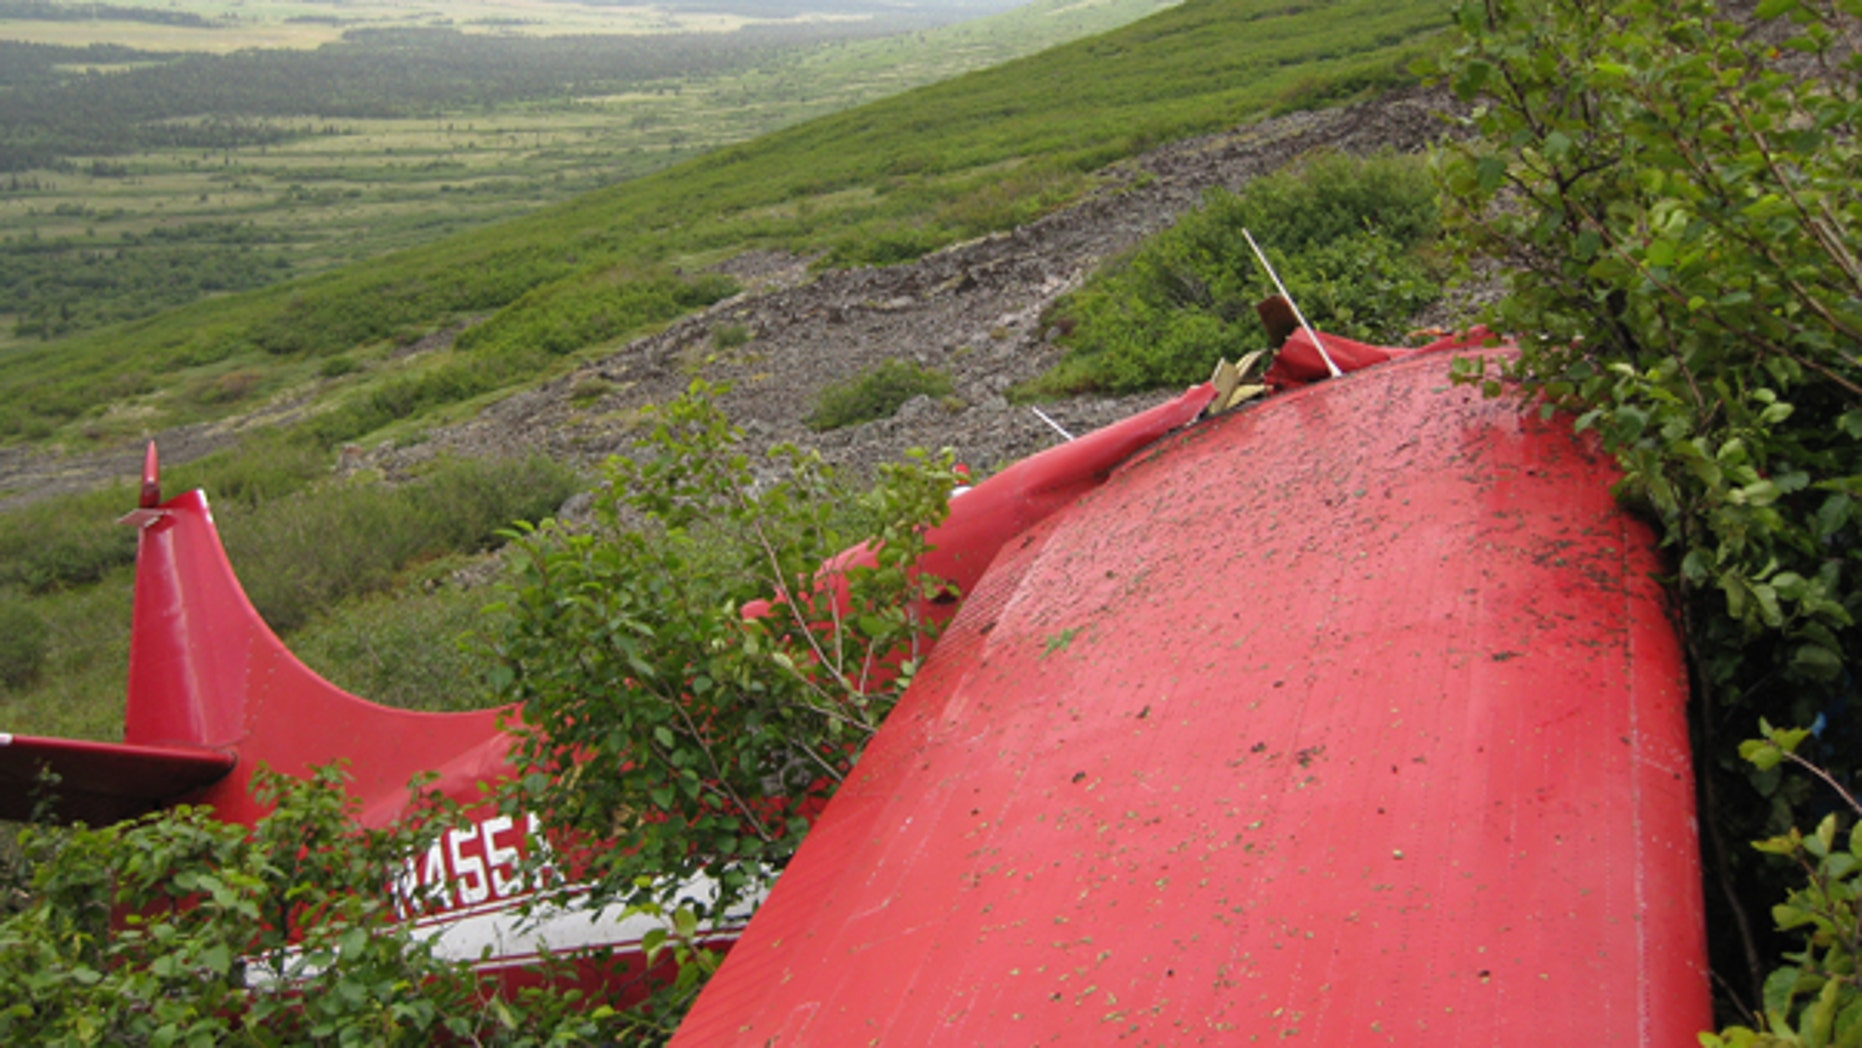 Aug. 11: This photo released by the National Transportation Safety Board shows the wreckage from the aircraft accident which killed former U.S. Senator Ted Stevens and four others, near Aleknagik, Alaska. A sophisticated beacon was registered to the plane that crashed, but it wasn't clear whether it was onboard during the flight.